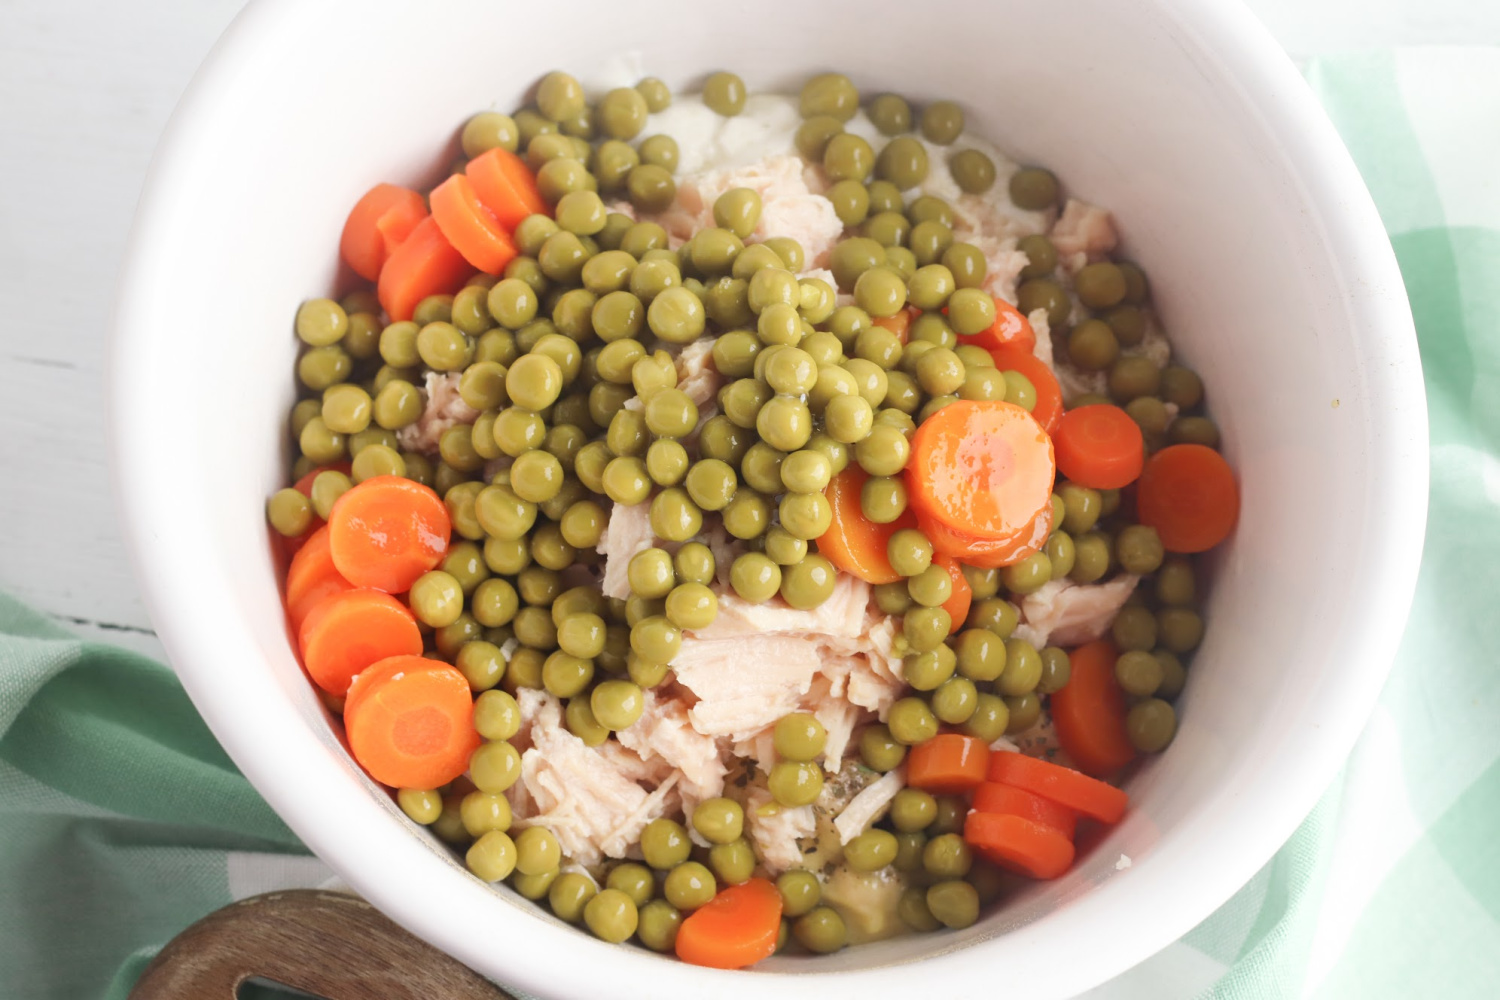 Ritz Chicken Casserole Directions include mixing in the peas and carrots with the other ingredients.